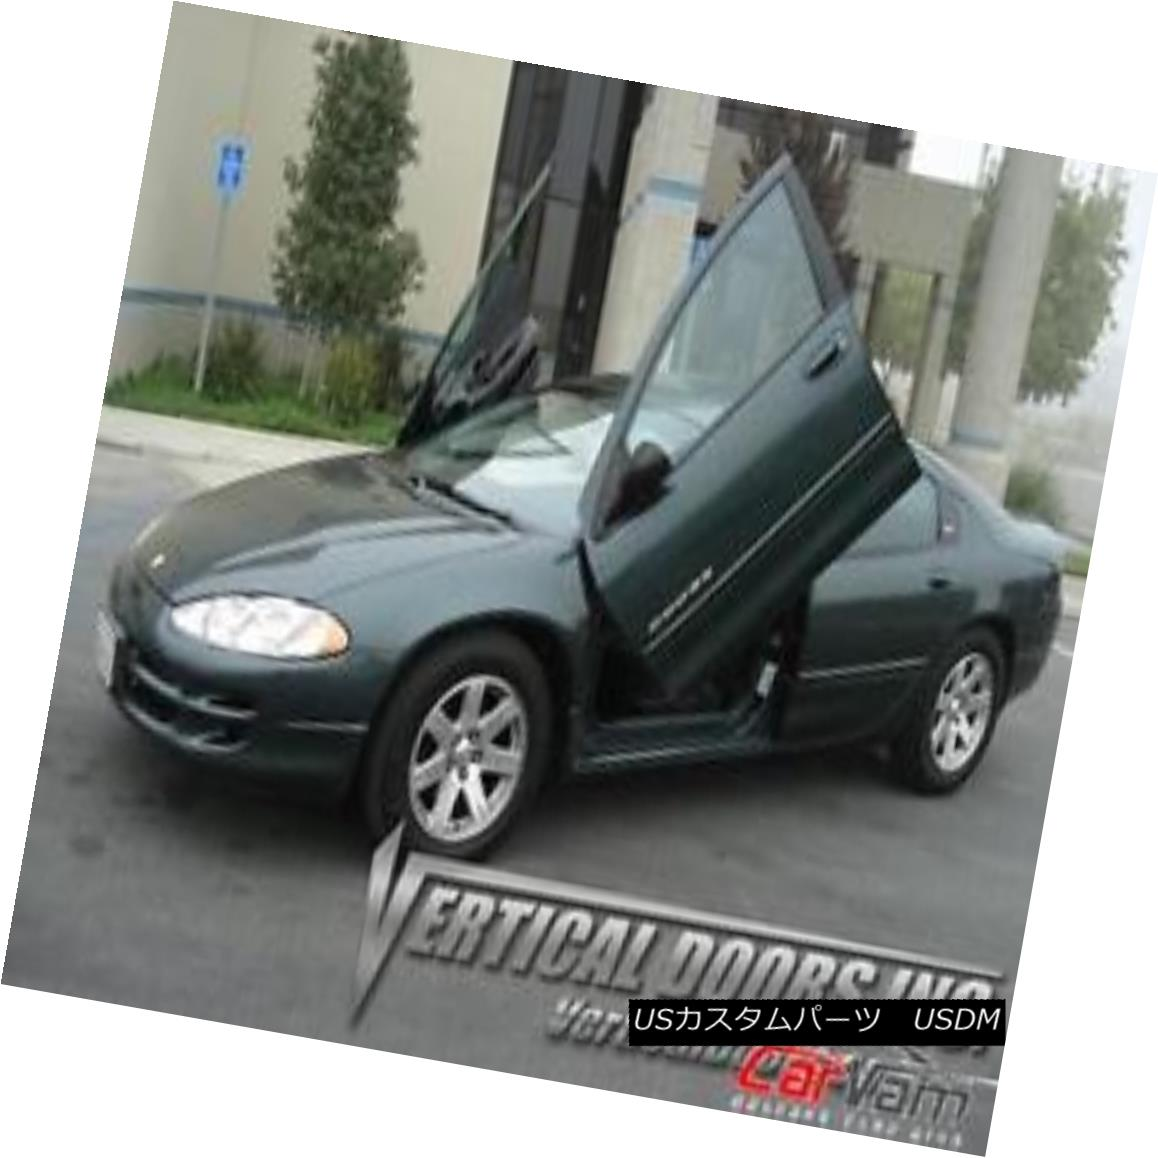 ガルウィングキット Vertical Doors - Vertical Lambo Door Kit For Dodge Intrepid 1993-04 -VDCDINT9304 垂直ドア - Dodge Intrepidのための垂直Lamboドアキット1993-04 -VDCDINT9304